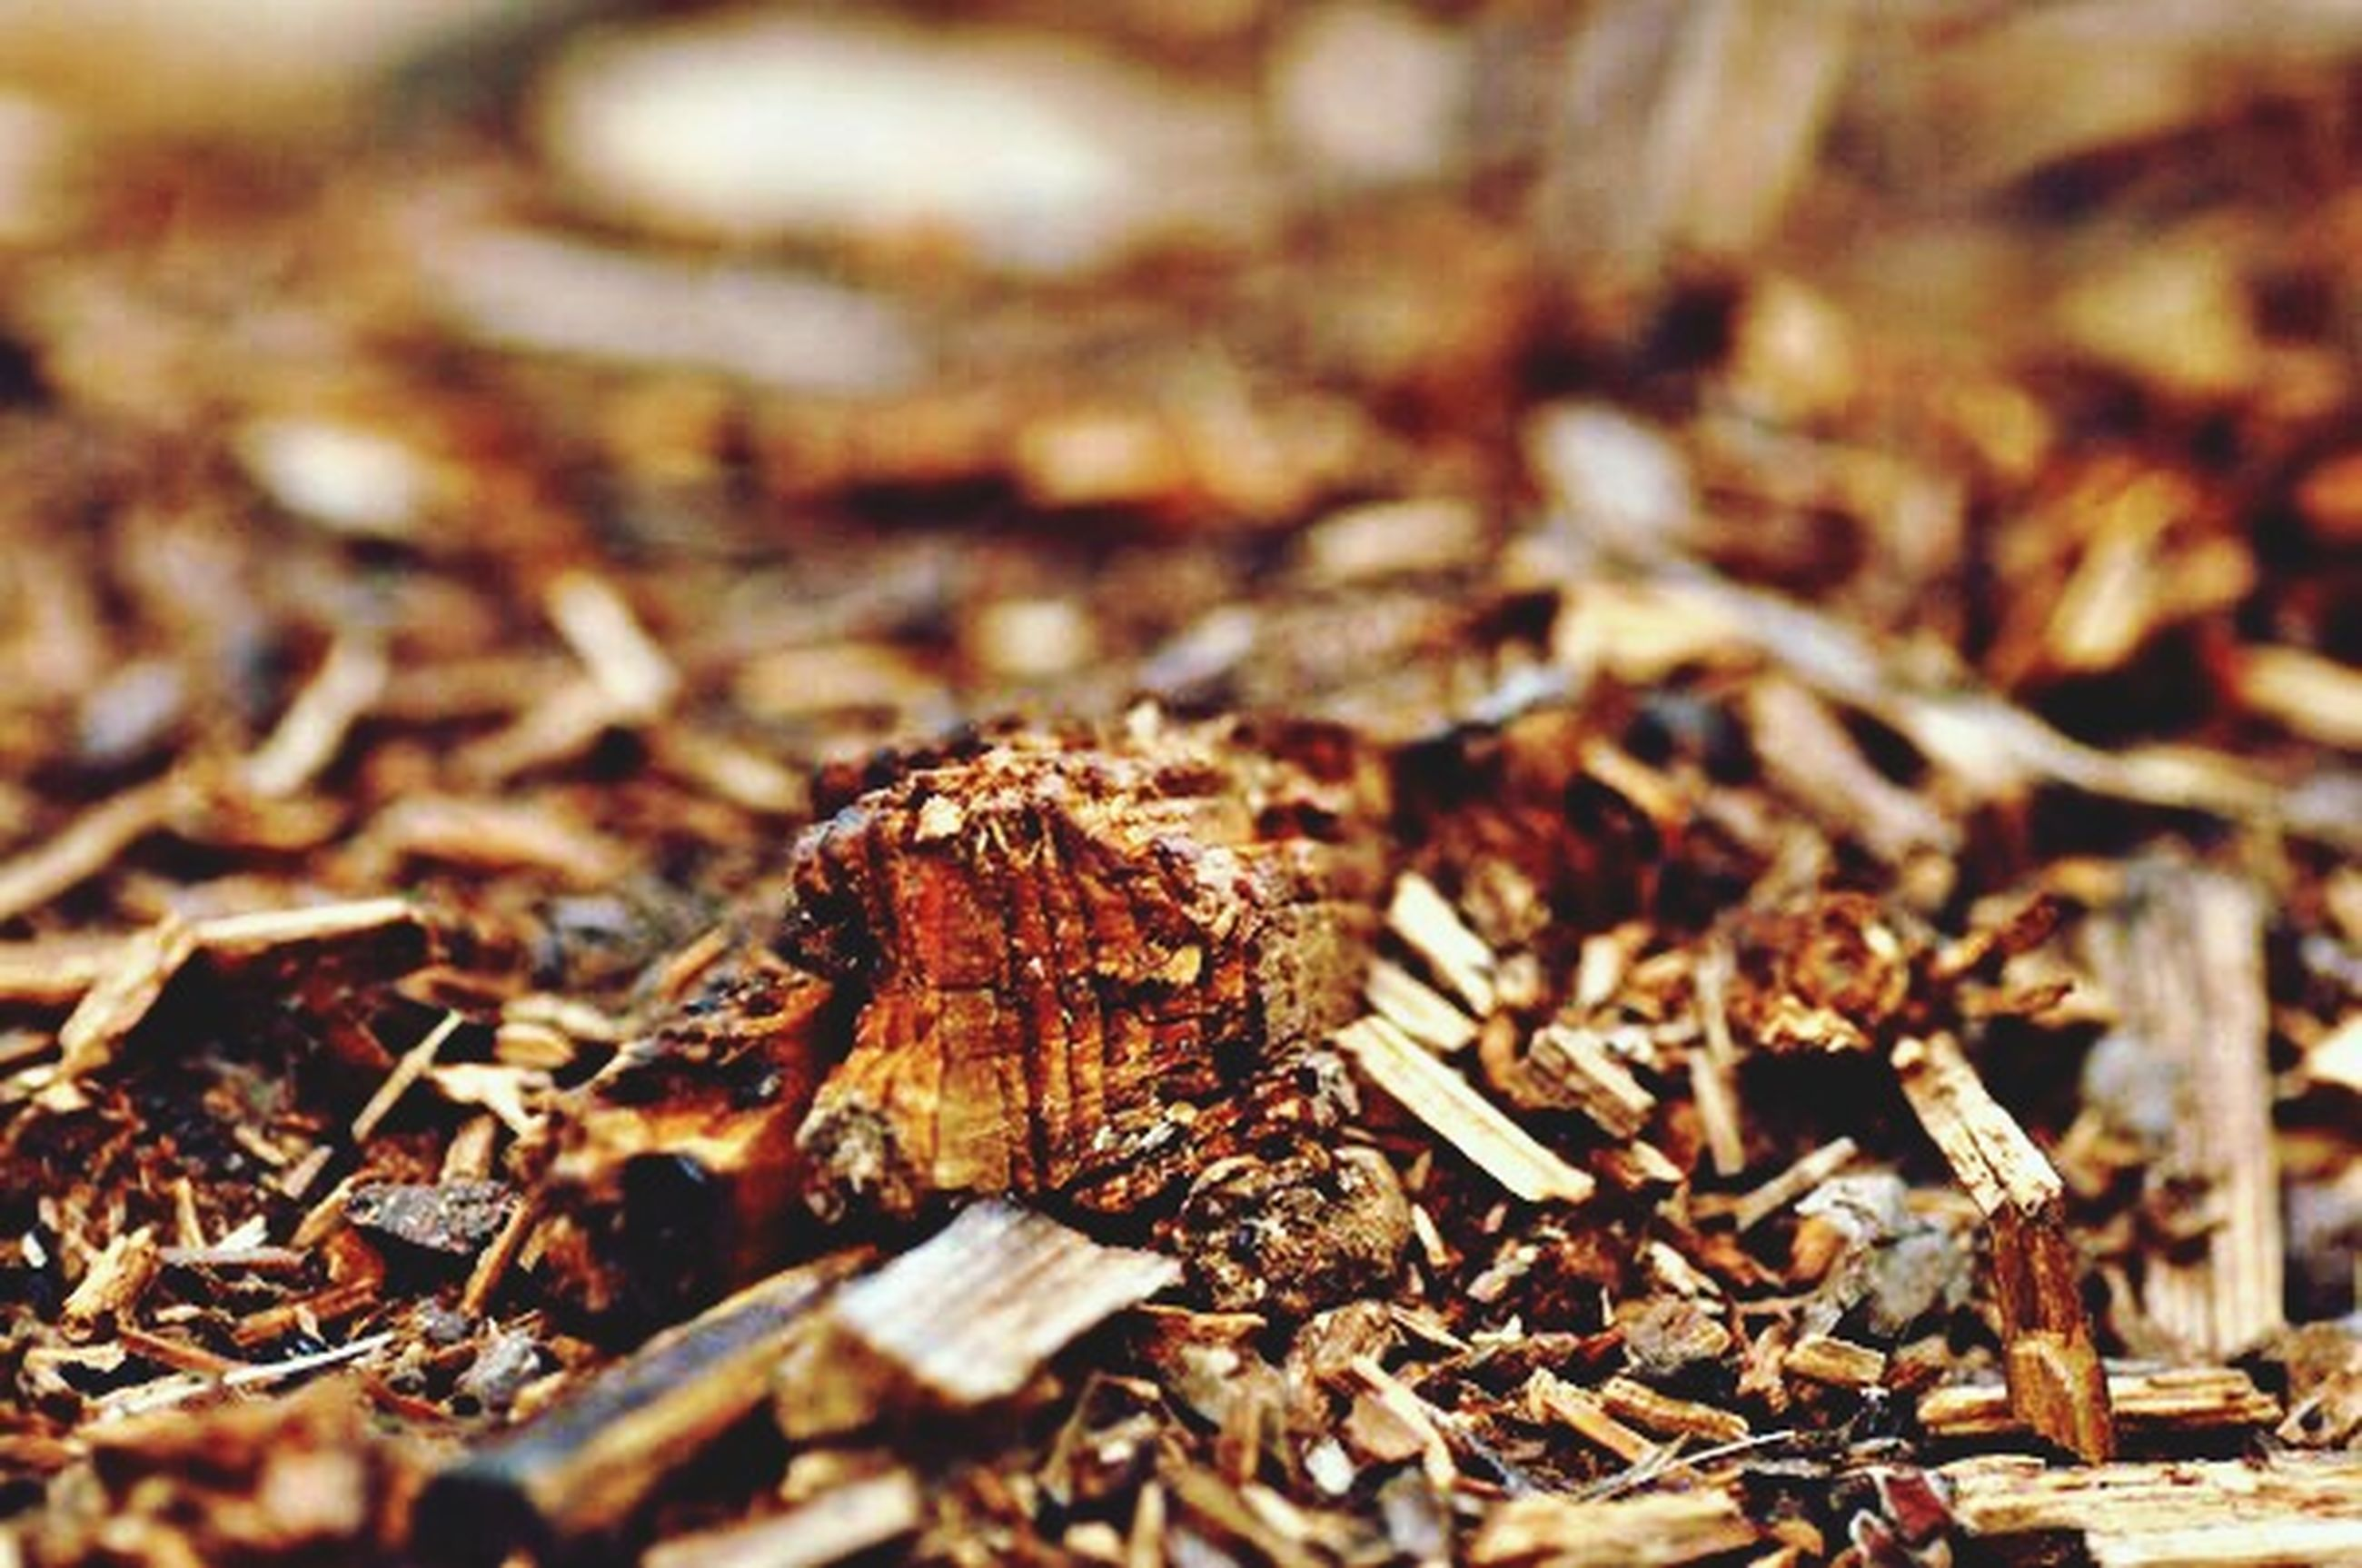 selective focus, close-up, dry, focus on foreground, animal themes, insect, wood - material, animals in the wild, one animal, nature, day, field, outdoors, wildlife, brown, leaf, ground, no people, high angle view, dirt